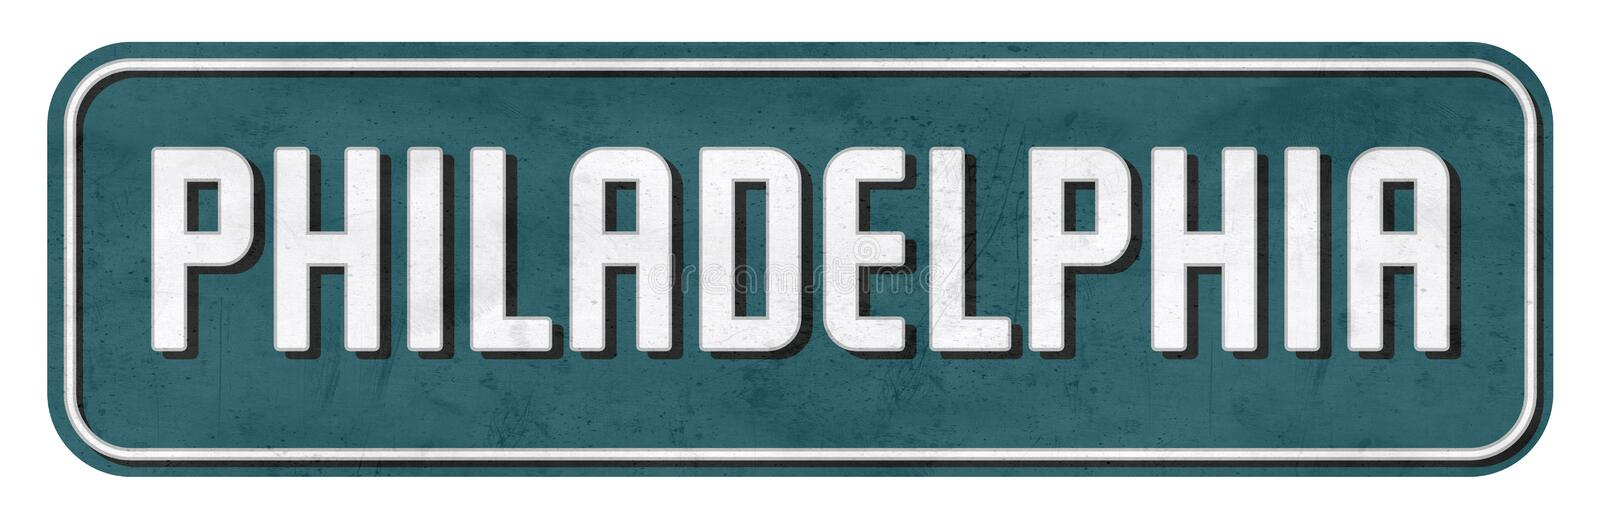 Philadelphia Street Sign in Eagles Colors NFL. Grunge teal silver white retro vintage PA royalty free stock images